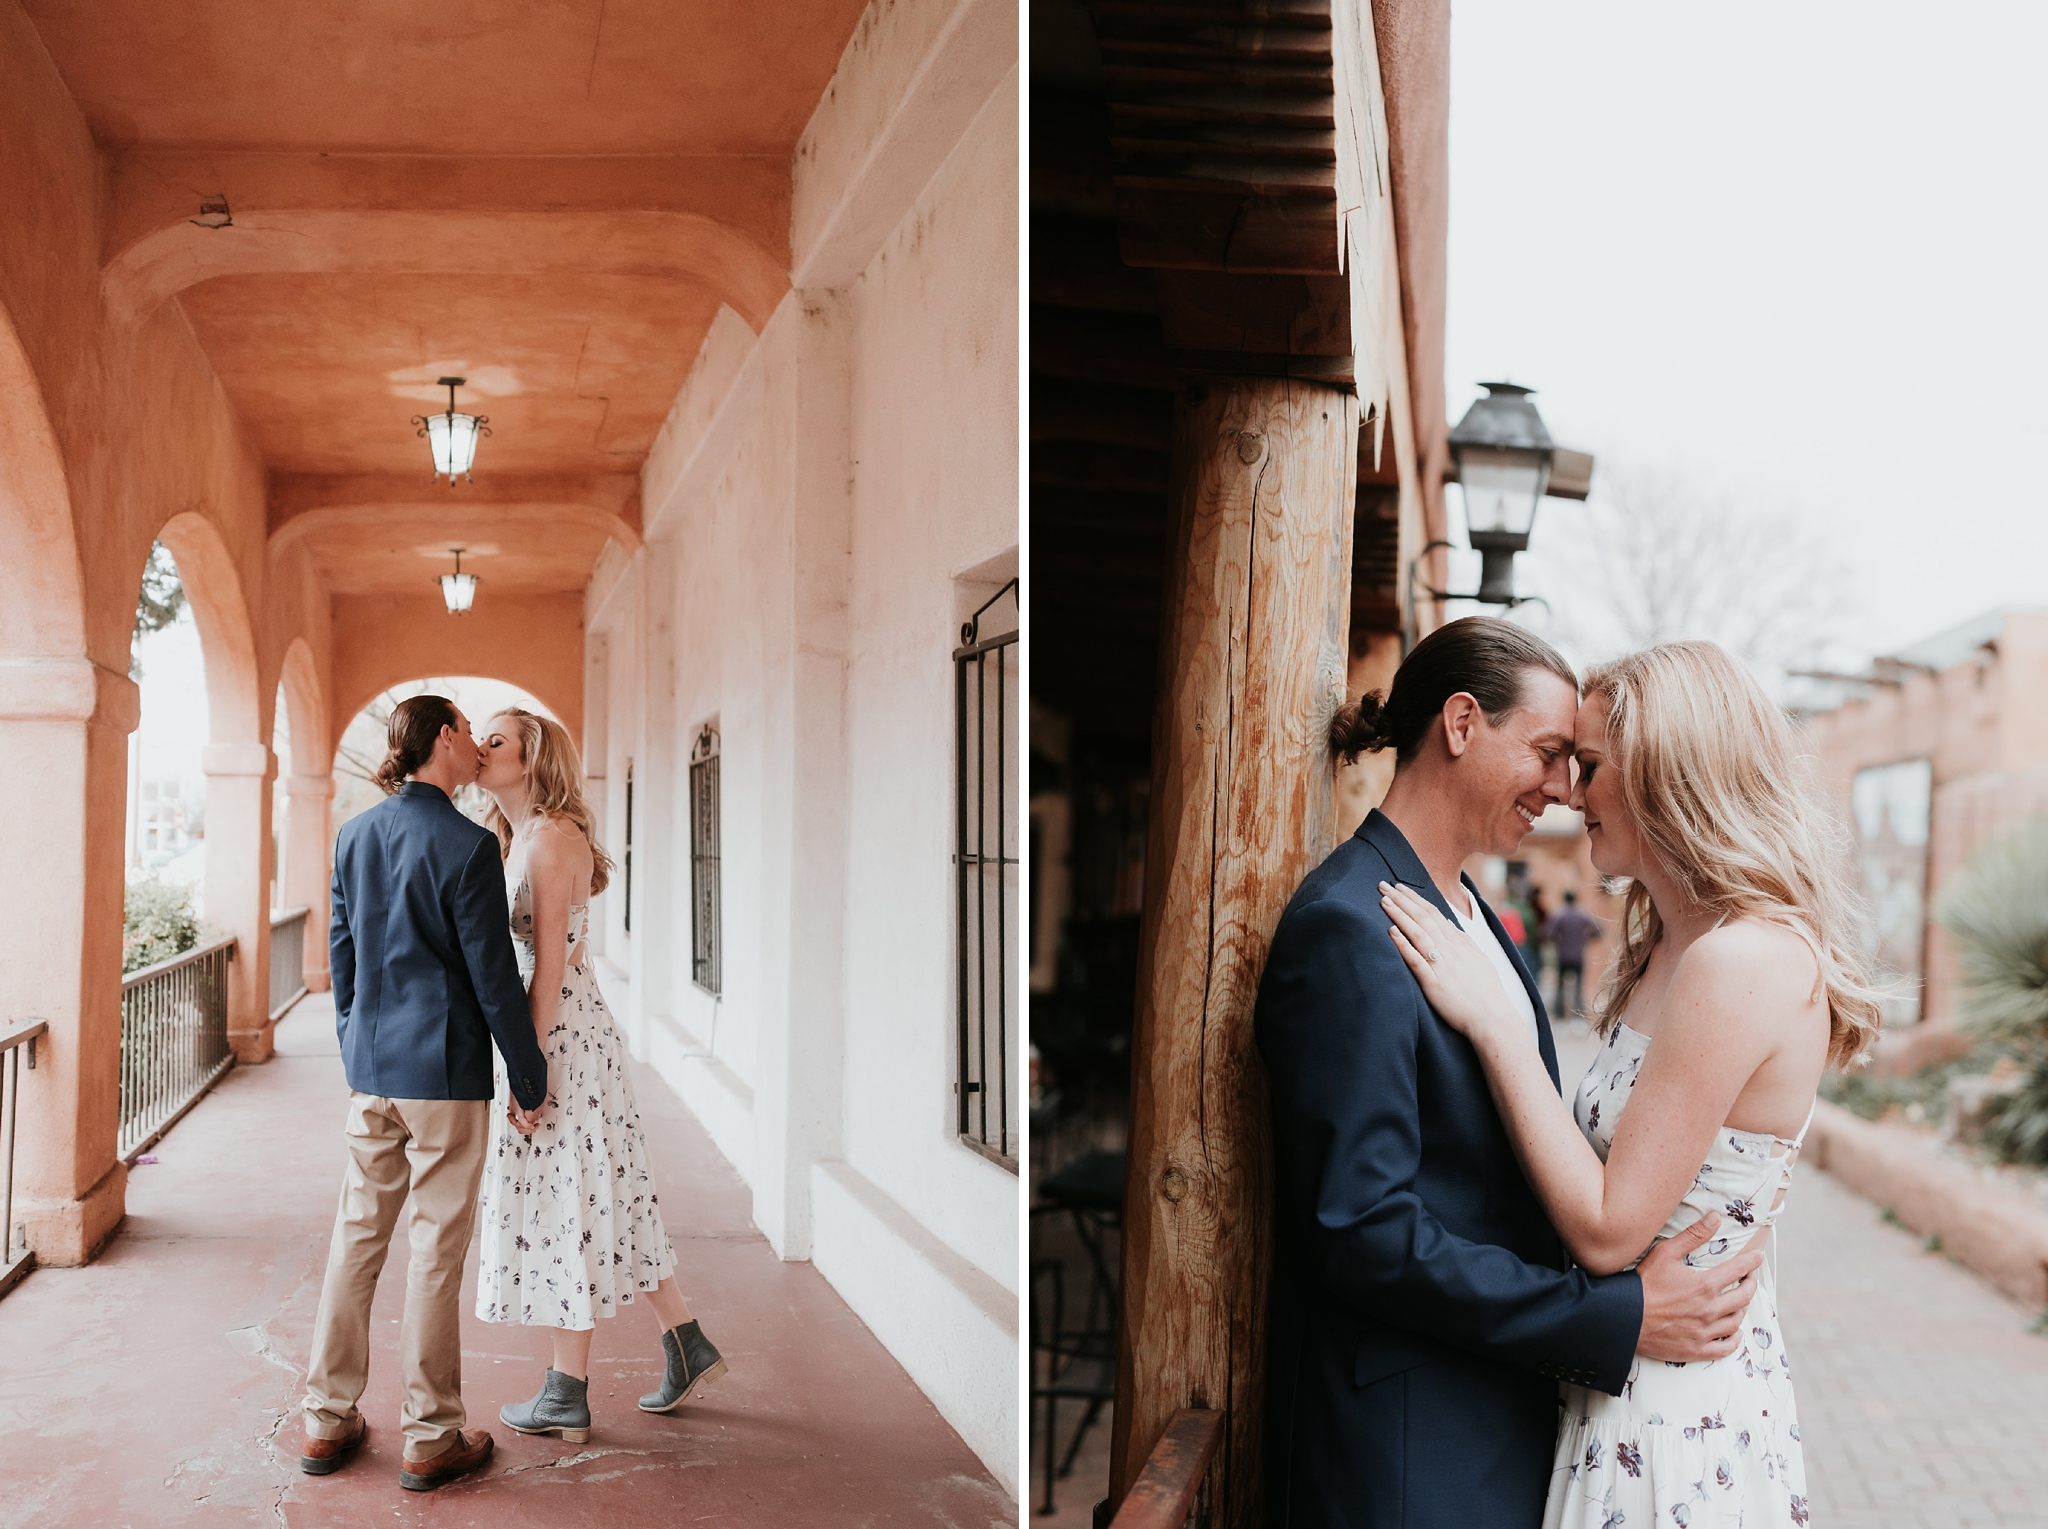 Alicia+lucia+photography+-+albuquerque+wedding+photographer+-+santa+fe+wedding+photography+-+new+mexico+wedding+photographer+-+new+mexico+wedding+-+new+mexico+engagement+-+albuquerque+engagement+-+old+town+engagement_0013.jpg